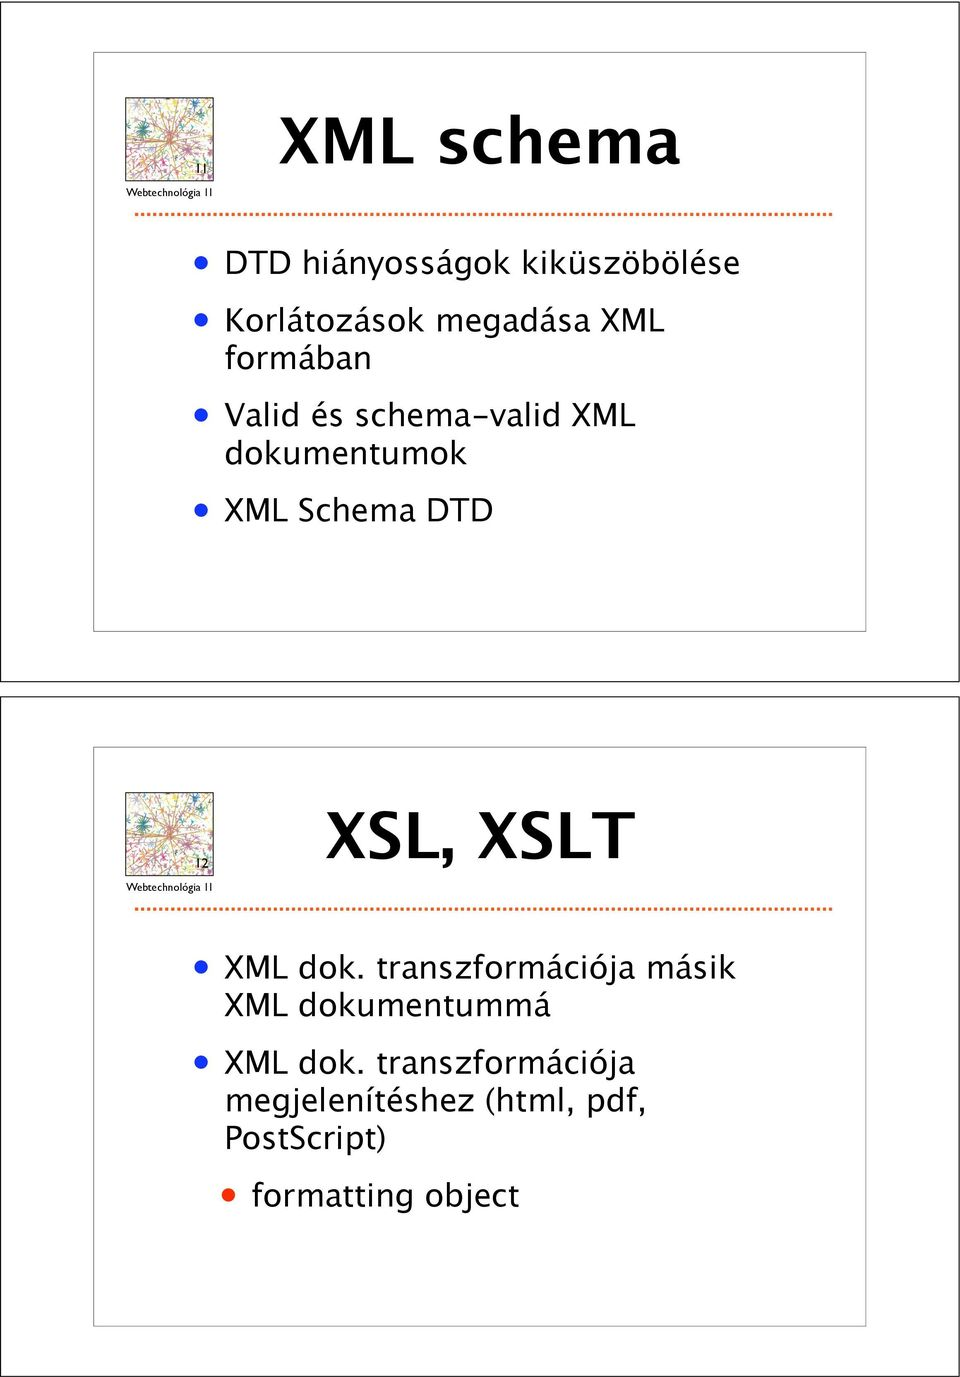 INTERNET,mapped on the opposite page, is a scalefree network in that 12 XSL, XSLT XML dok.